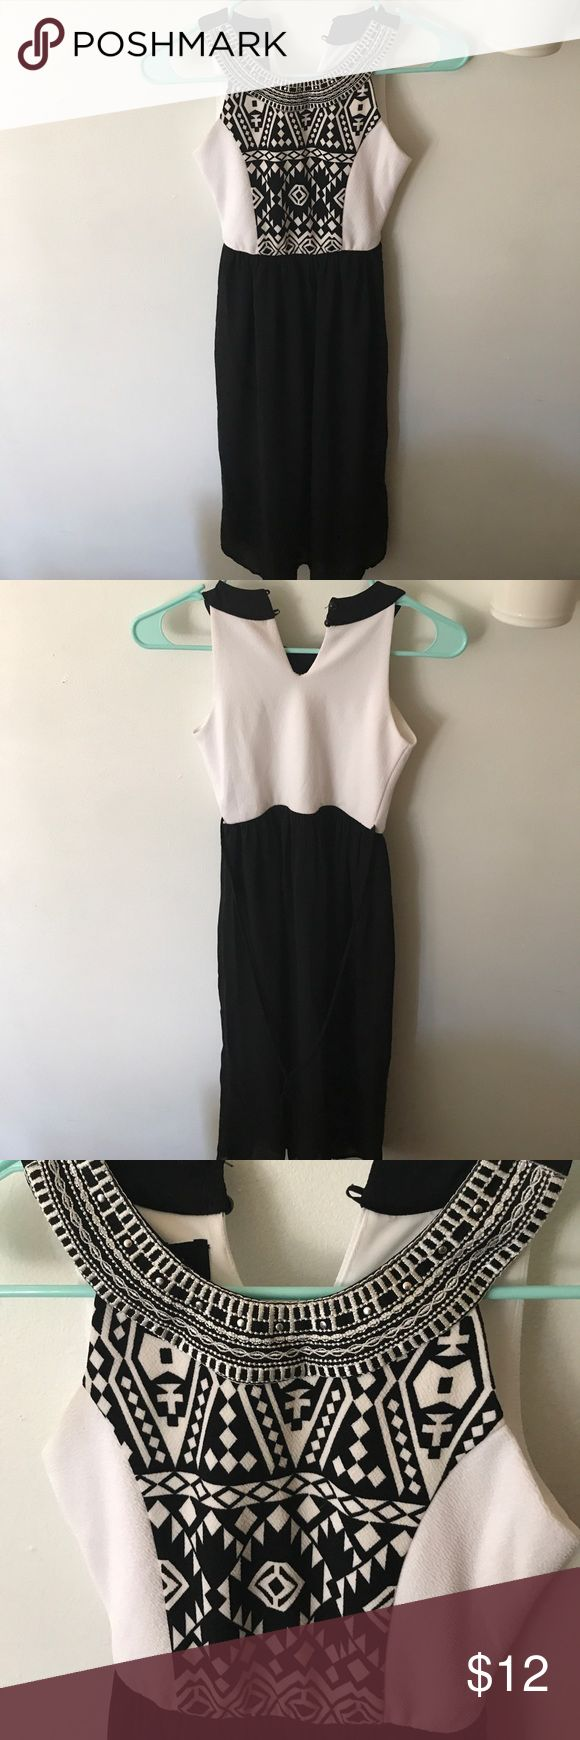 Girls Black and white dress Black and white dress size 7 for girls. Aztec print on top. Dress goes to about knee length and has sheer black slip over top. Ties in the back Amy Byer Dresses Formal